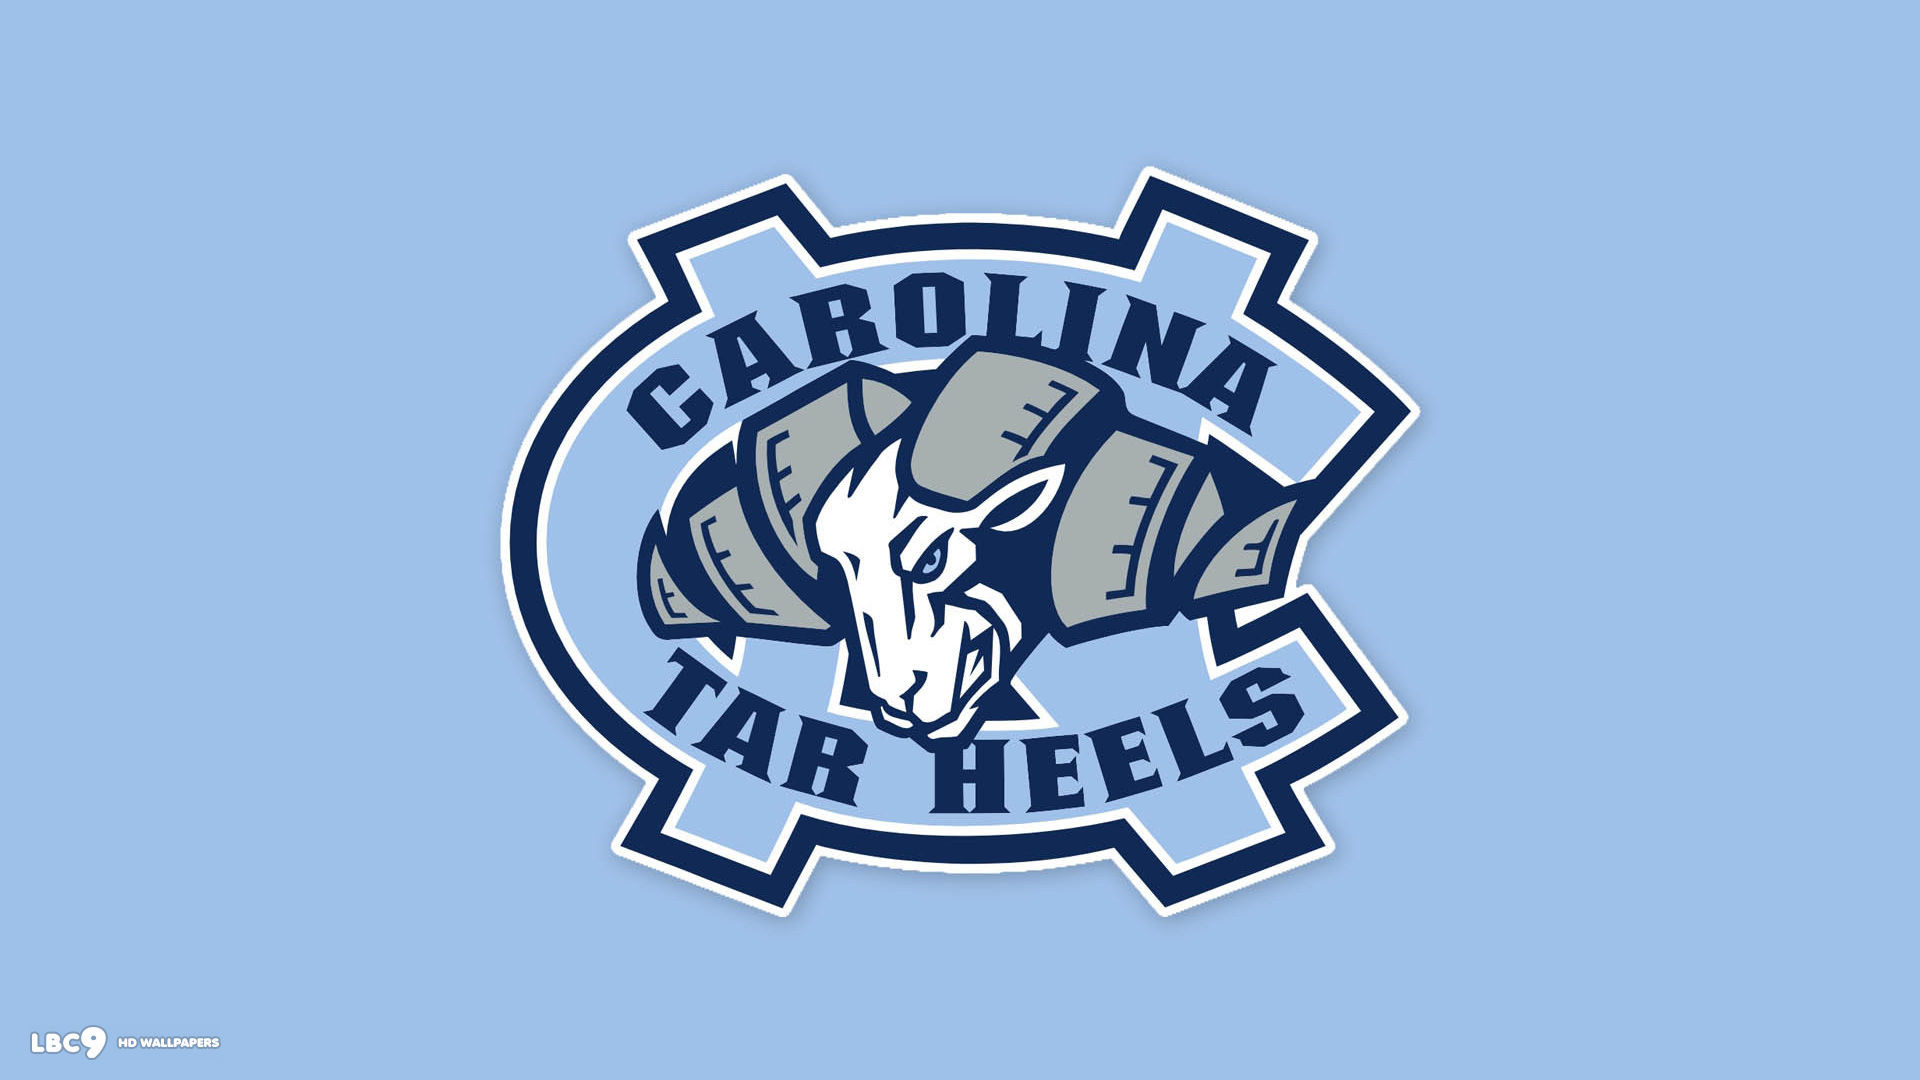 1920x1080 undefined Tar Heels Wallpapers (38 Wallpapers) | Adorable Wallpapers